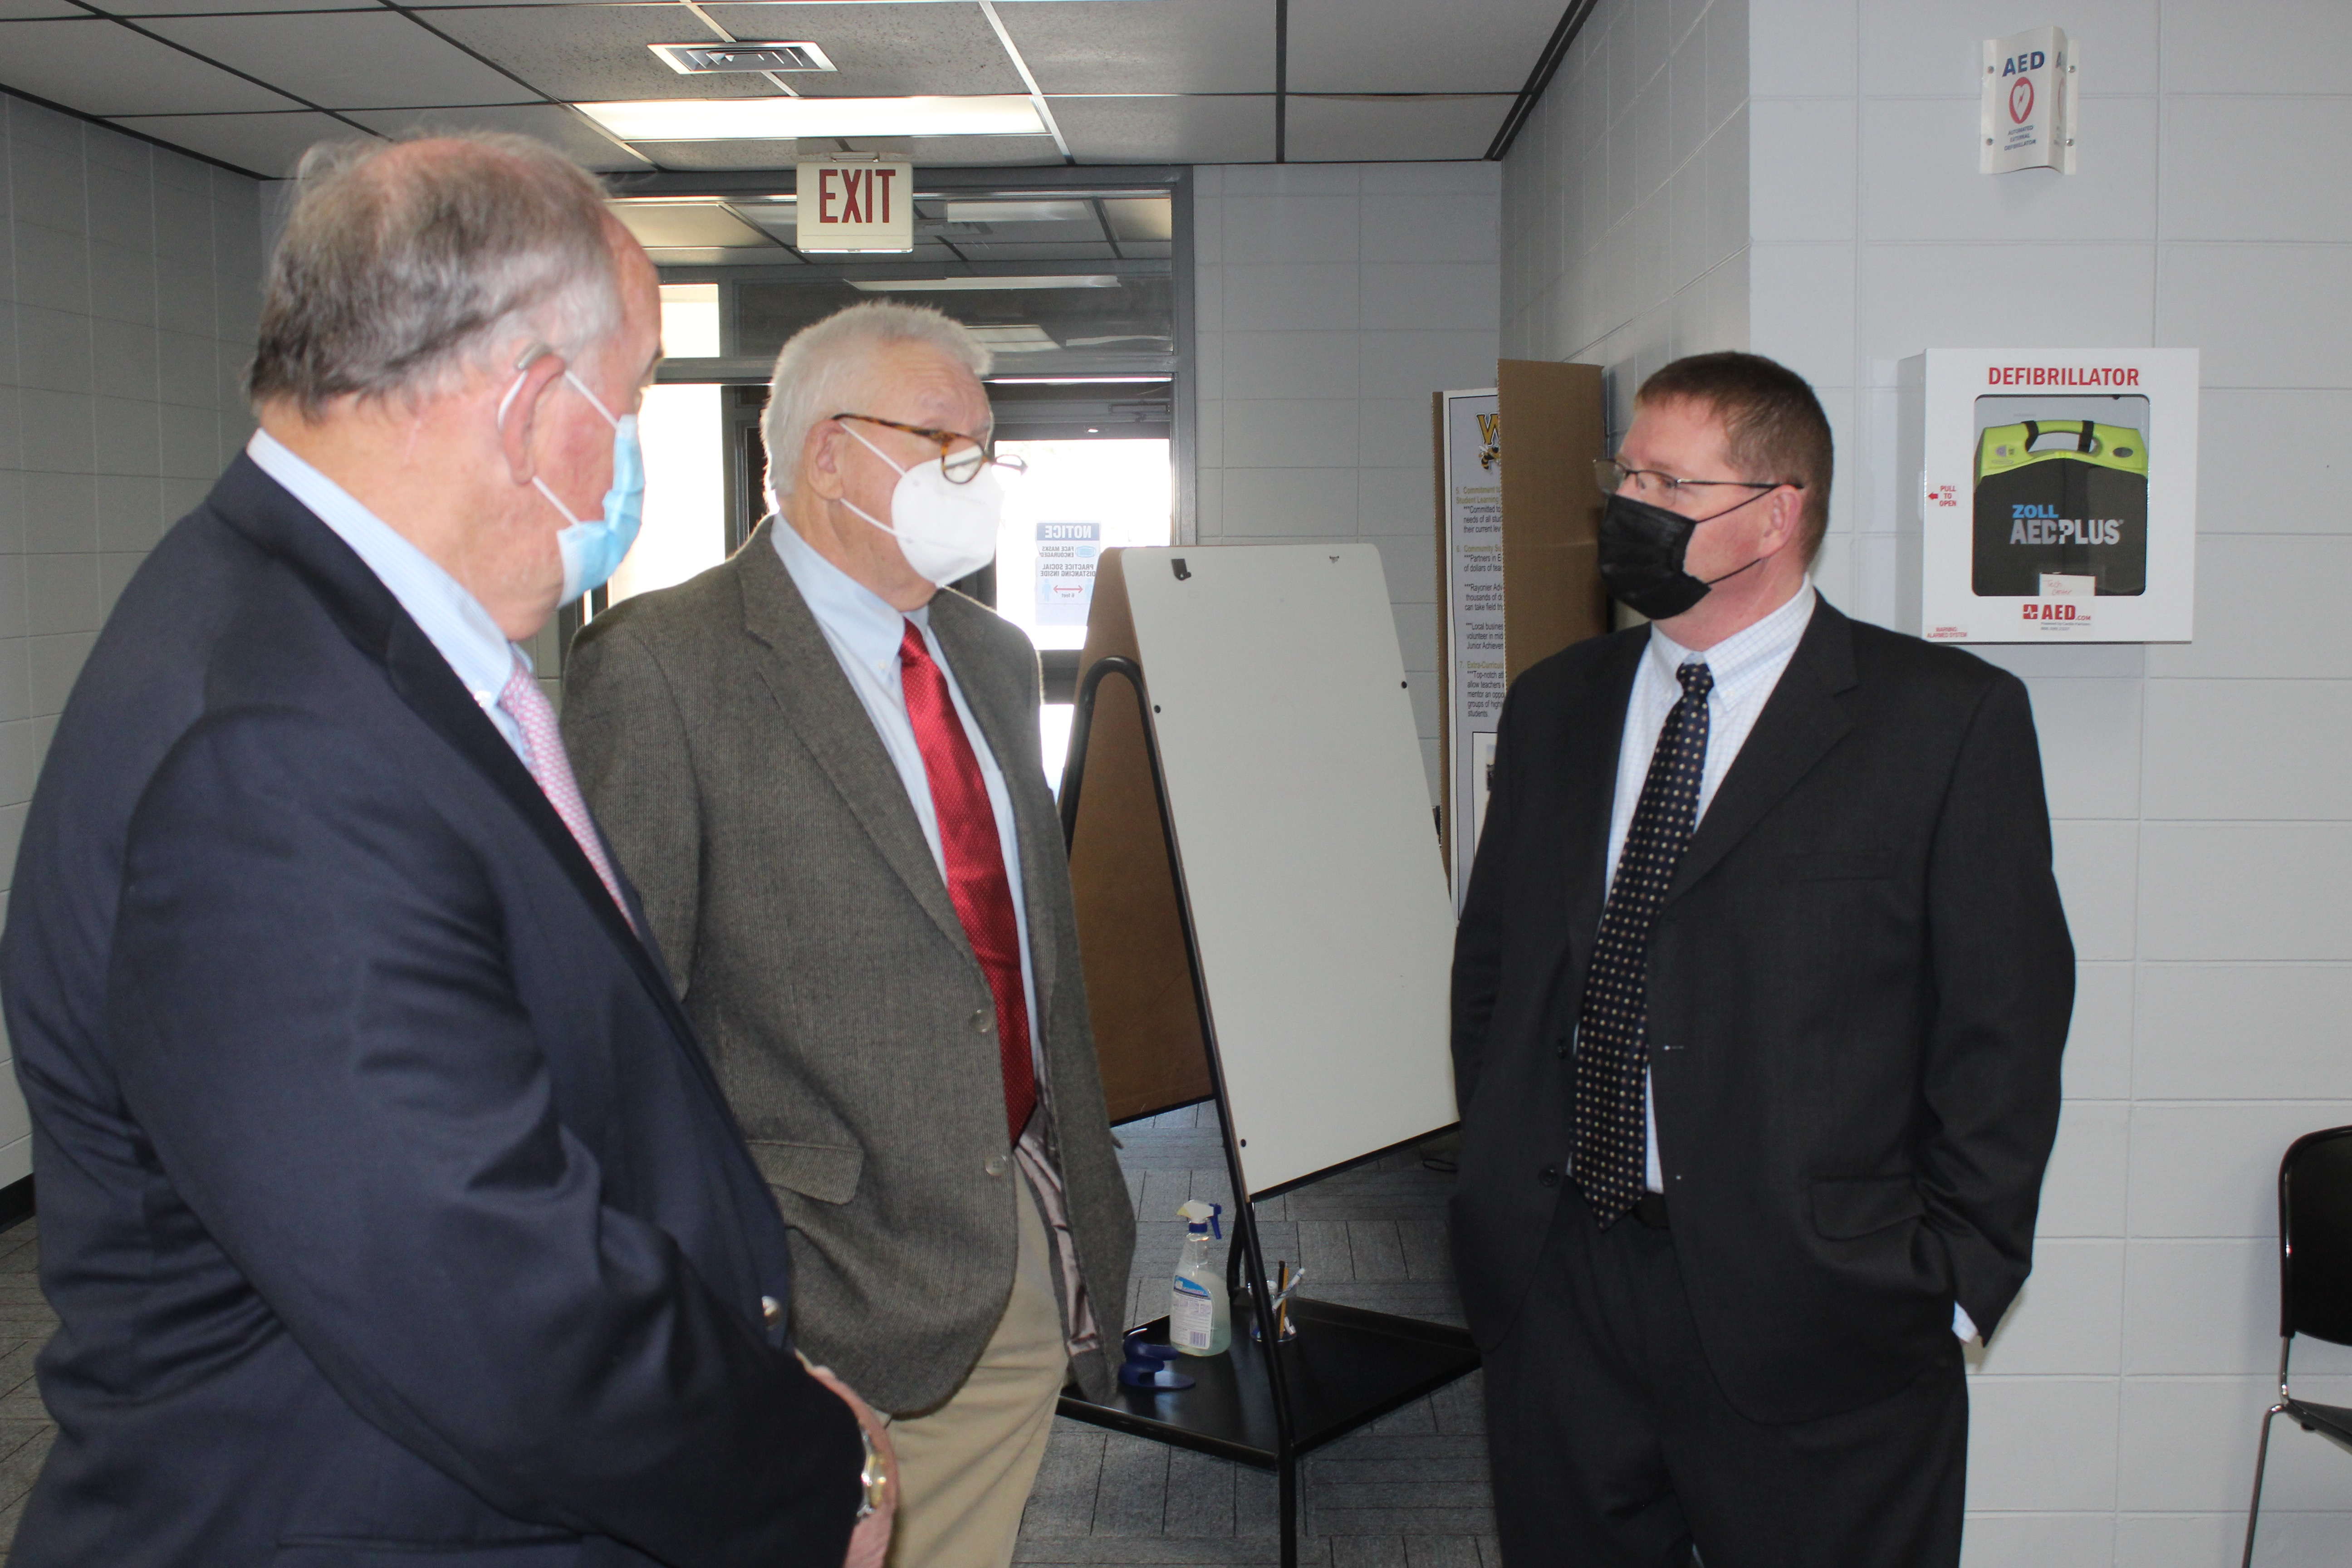 Newly hired to be Wayne County's school superintendent, Sean Kelly, right, talks with Board of Education members Joe McPipkin, left, and Ray Davidson about topics ranging from sports to the COVID-19 pandemic.